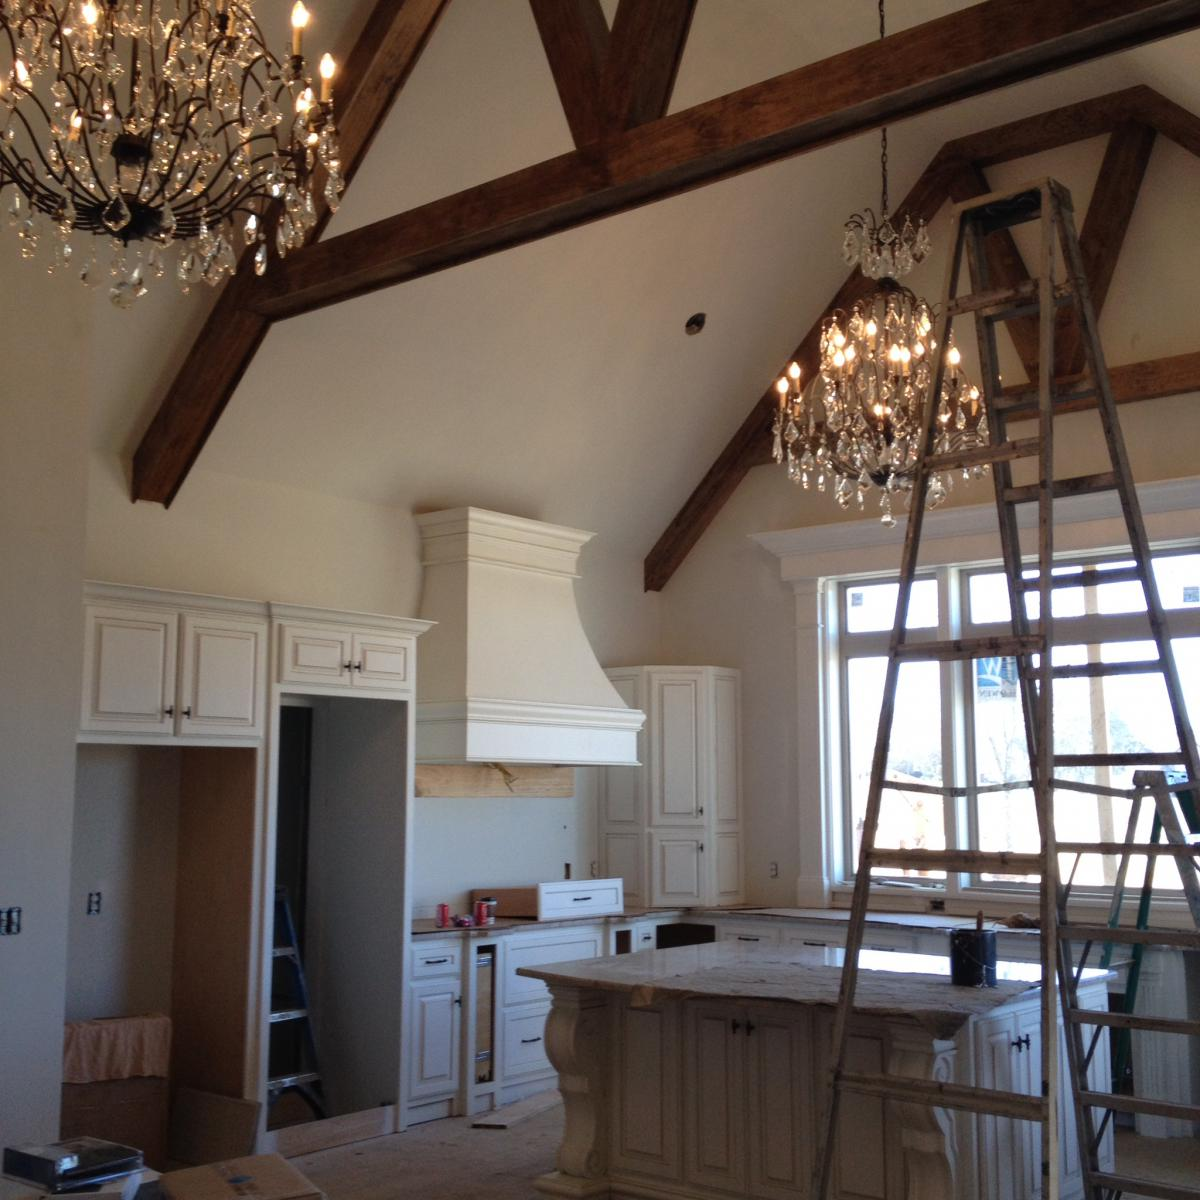 Cathedral ceilings in kitchen with wood beams